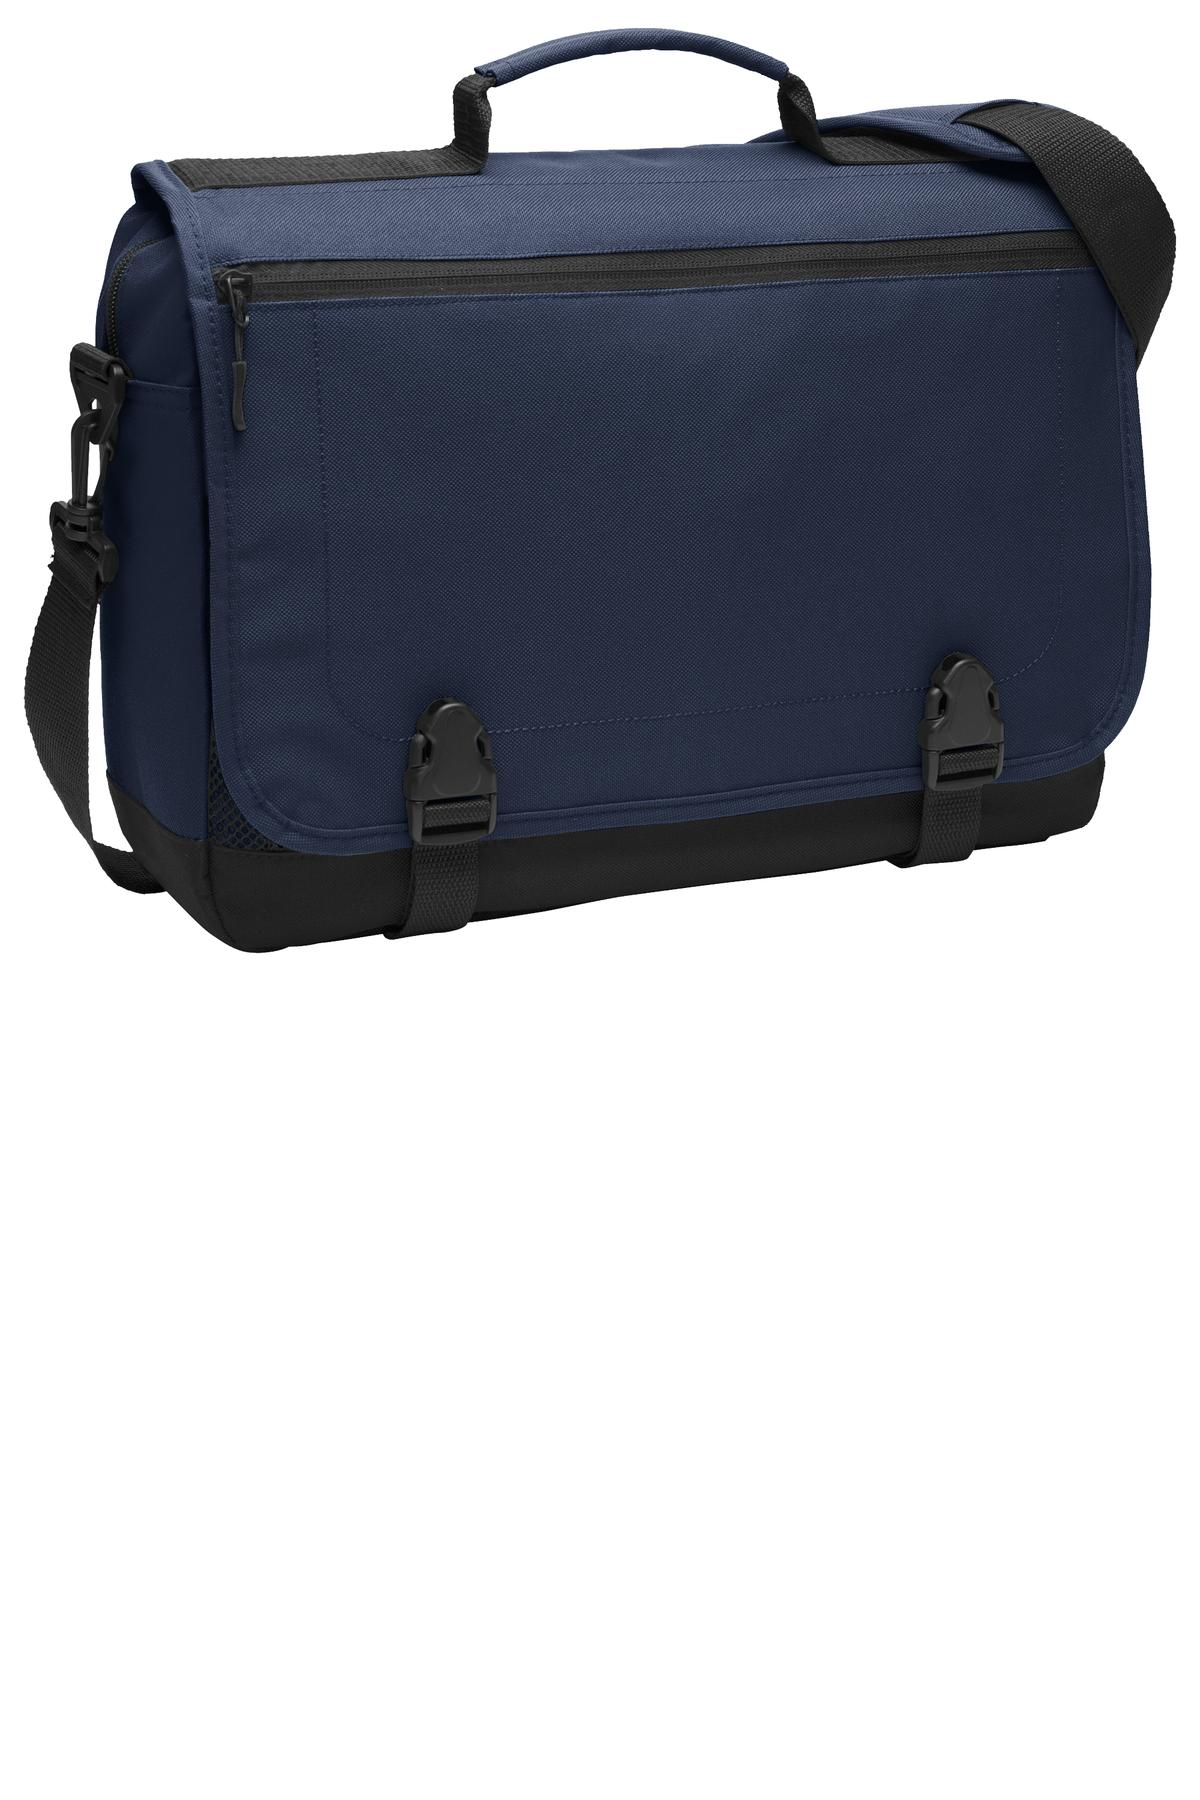 Port Authority ®  Messenger Briefcase. BG304 - Navy